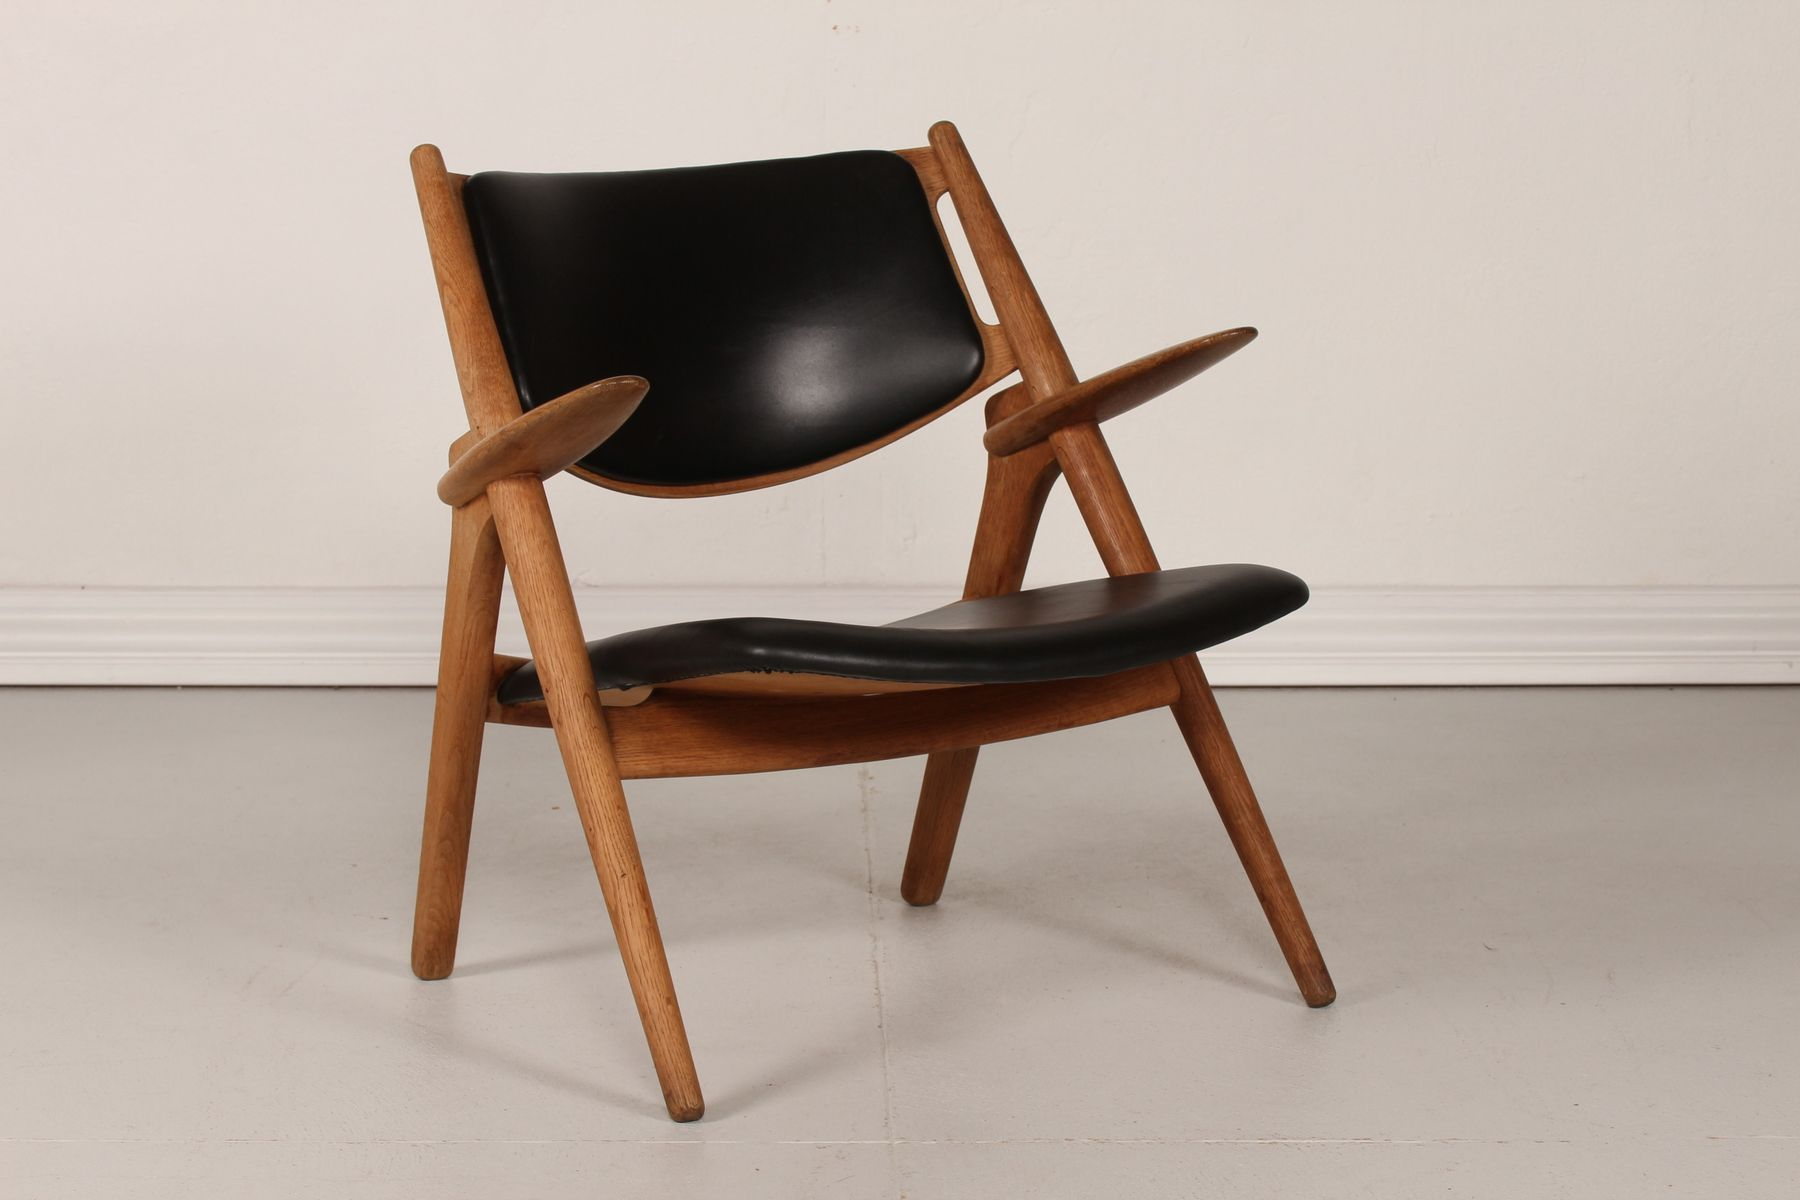 ch 28 oak sawbench chair by hans j wegner for carl hansen. Black Bedroom Furniture Sets. Home Design Ideas